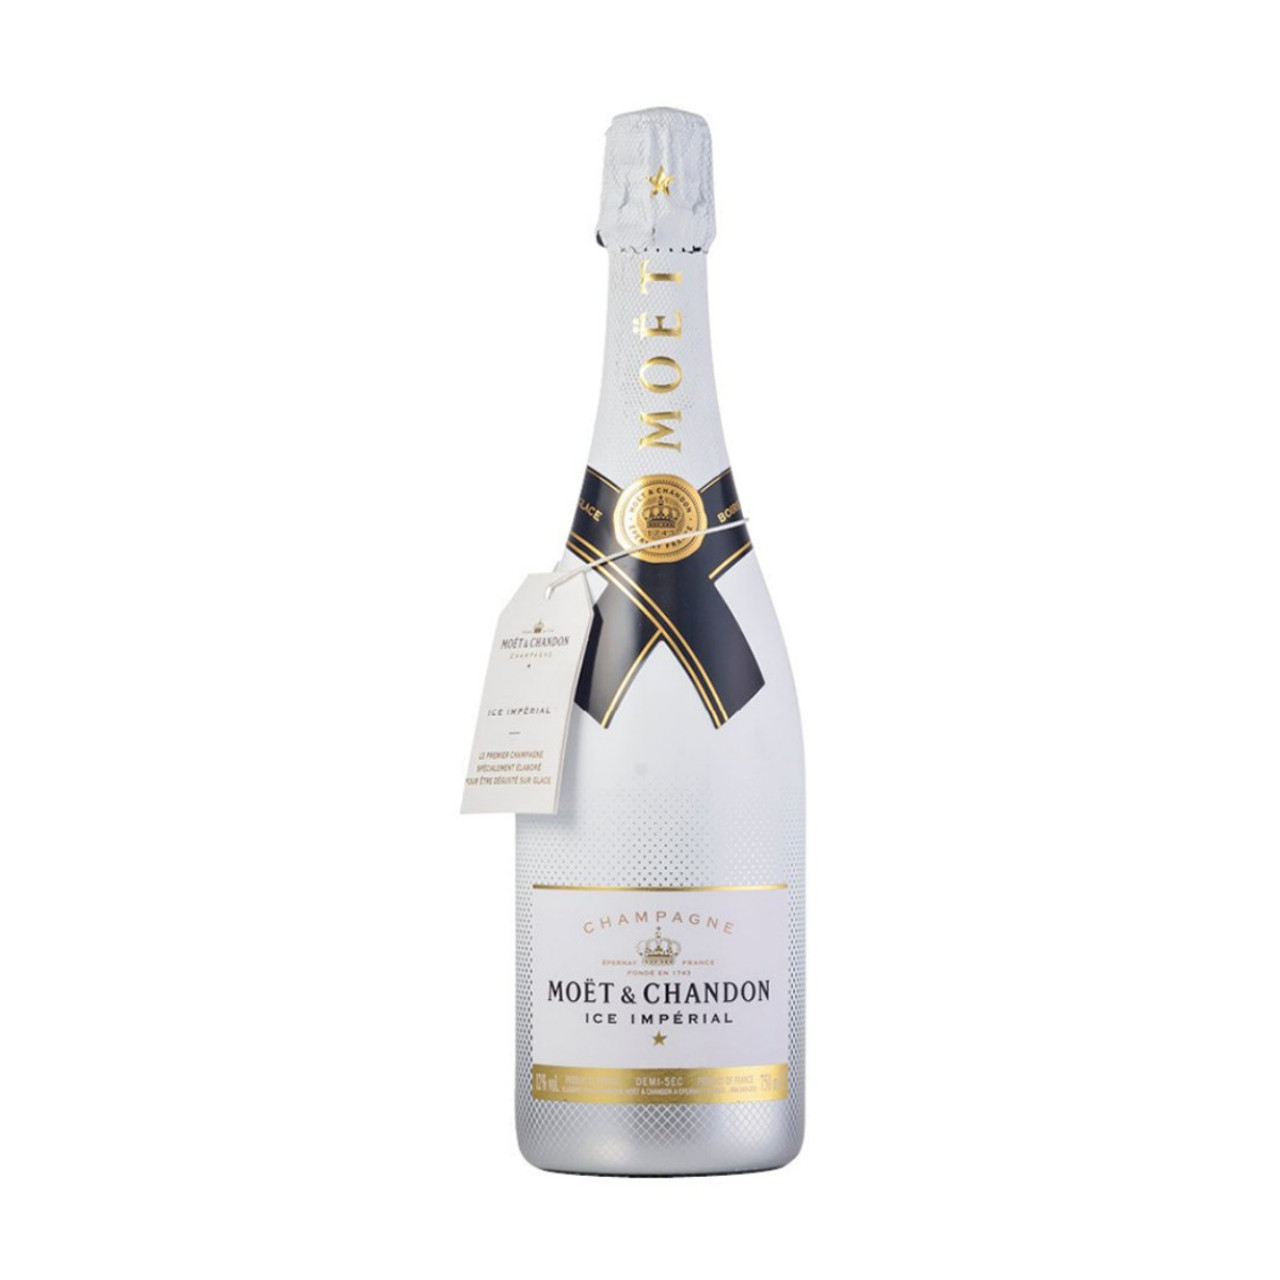 Moet Imperial Ice Champagne 750ml